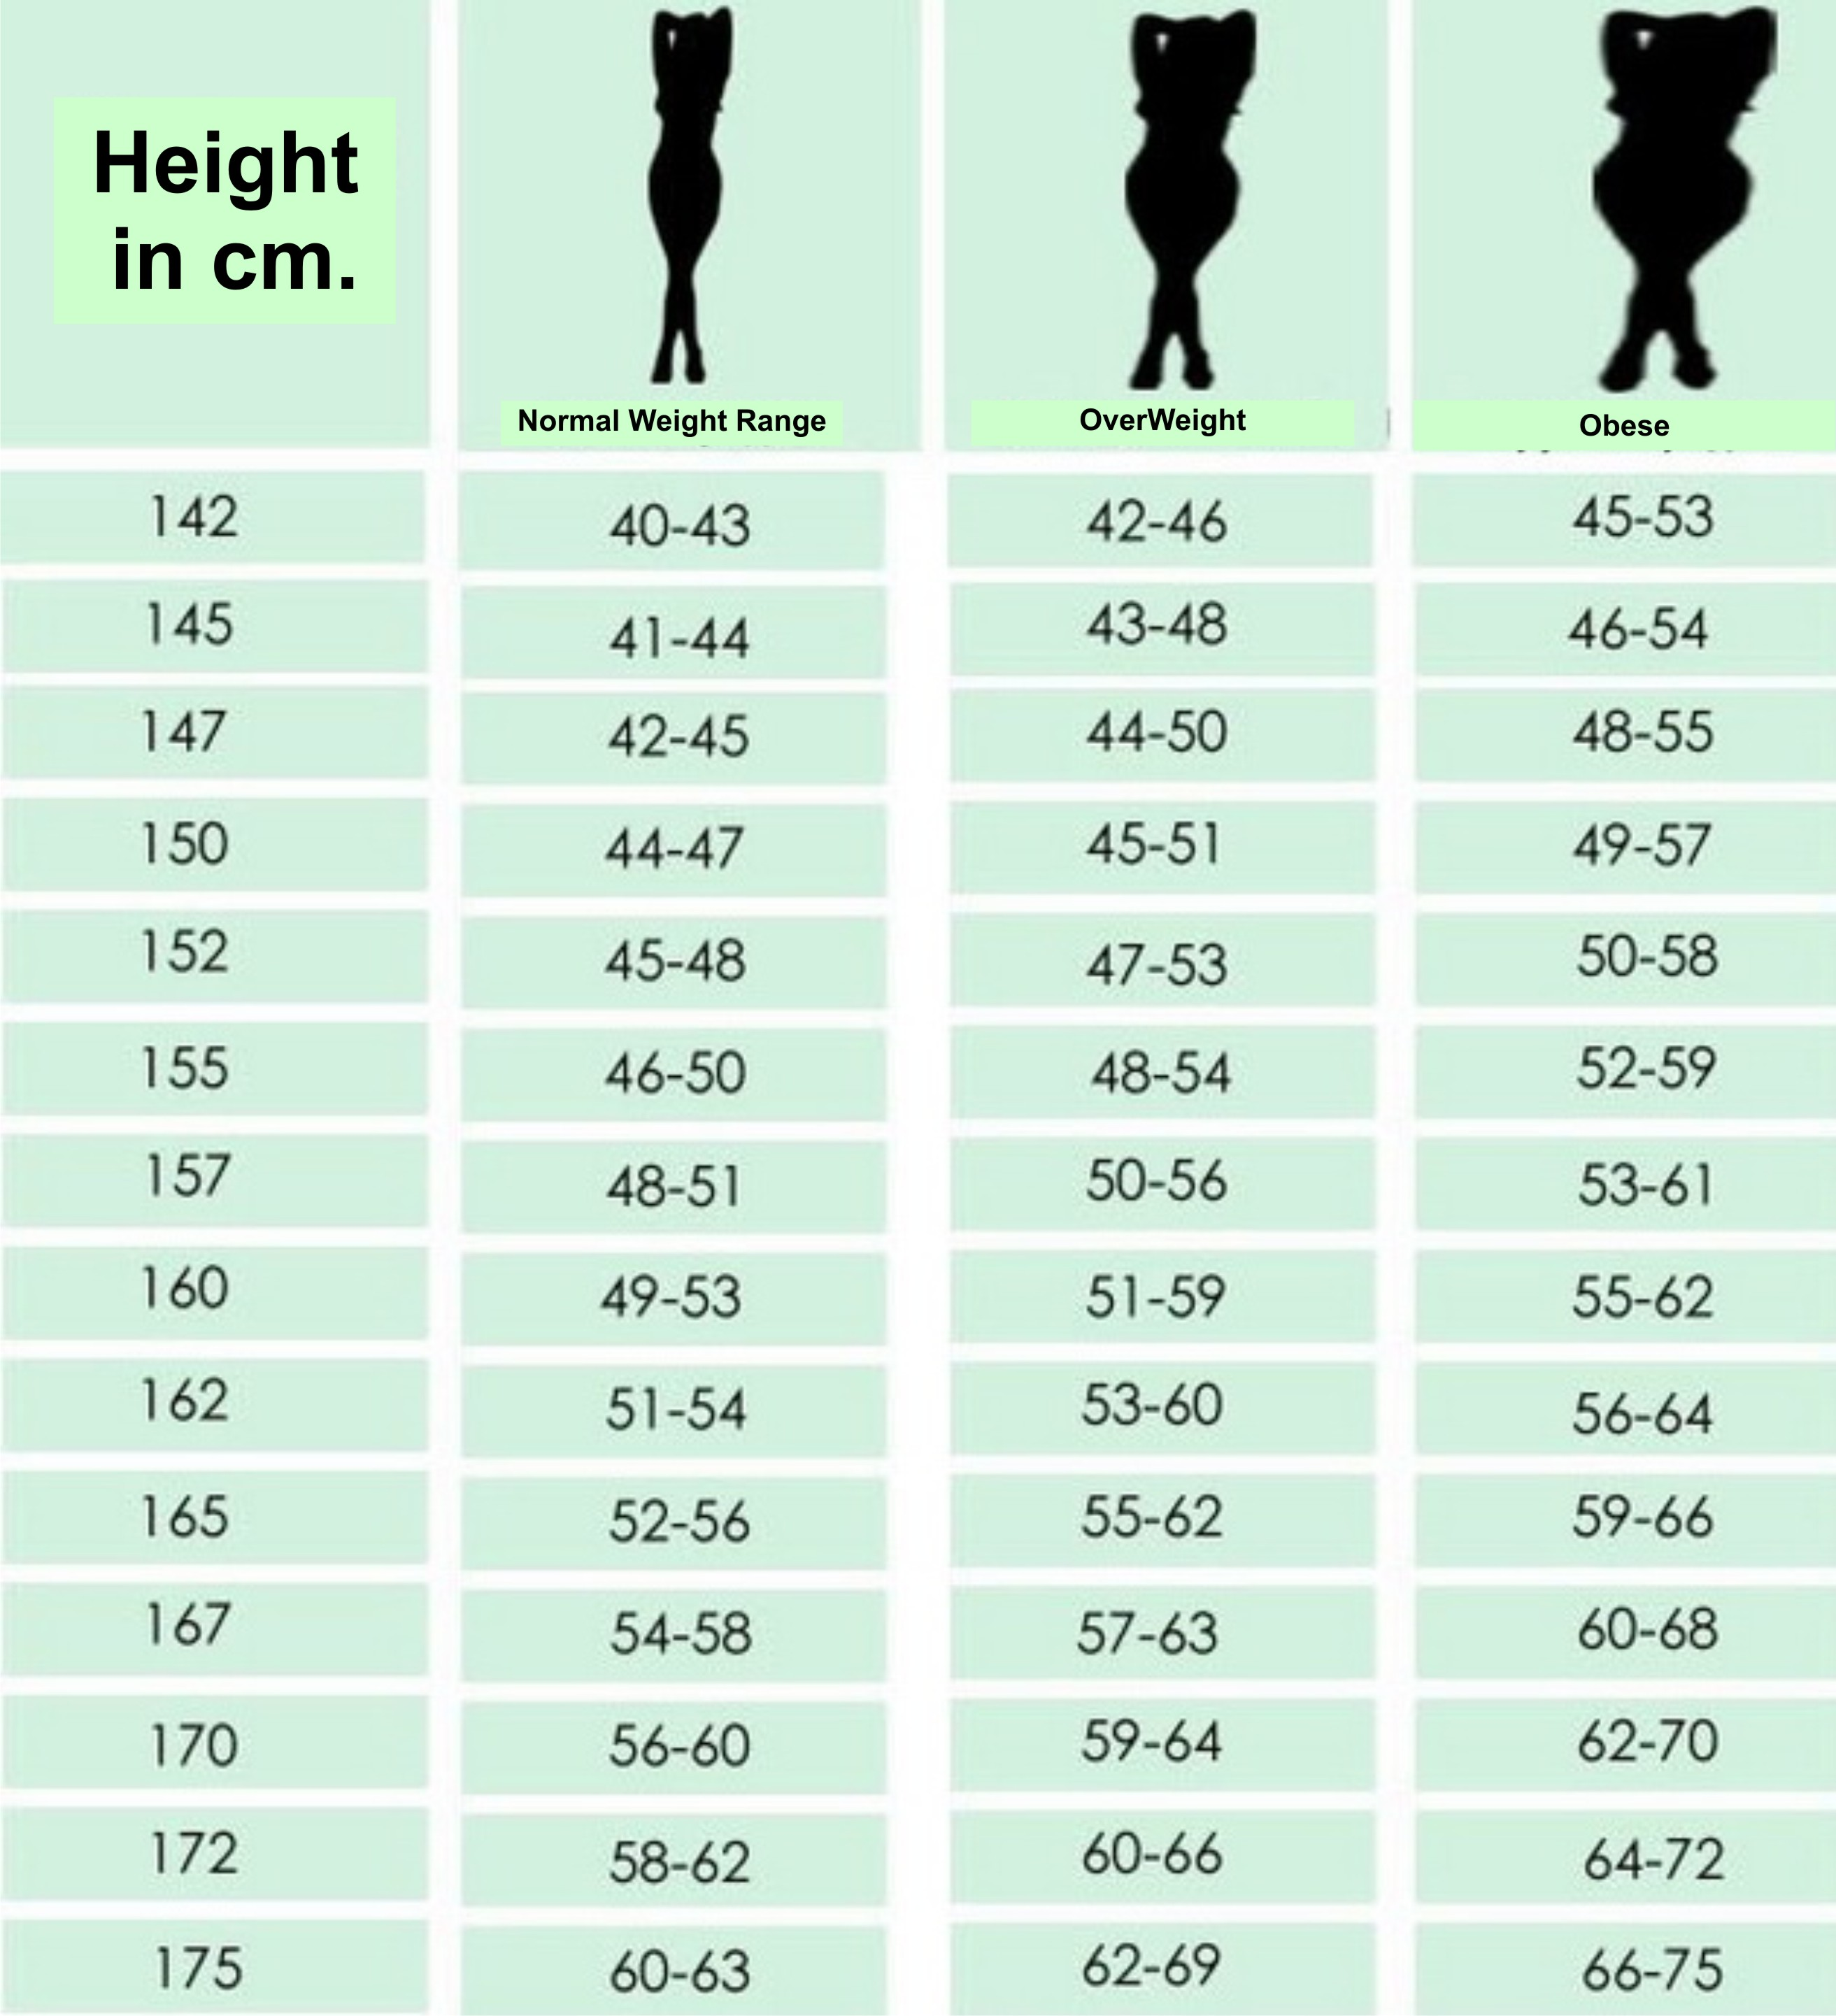 The height converter below allows you to quickly convert between feet and inches and centimetres when you need to find out your height in centimetres. Just type your height into the feet and inches boxes to convert to centimeters or into the centimeters box to convert to feet and inches.